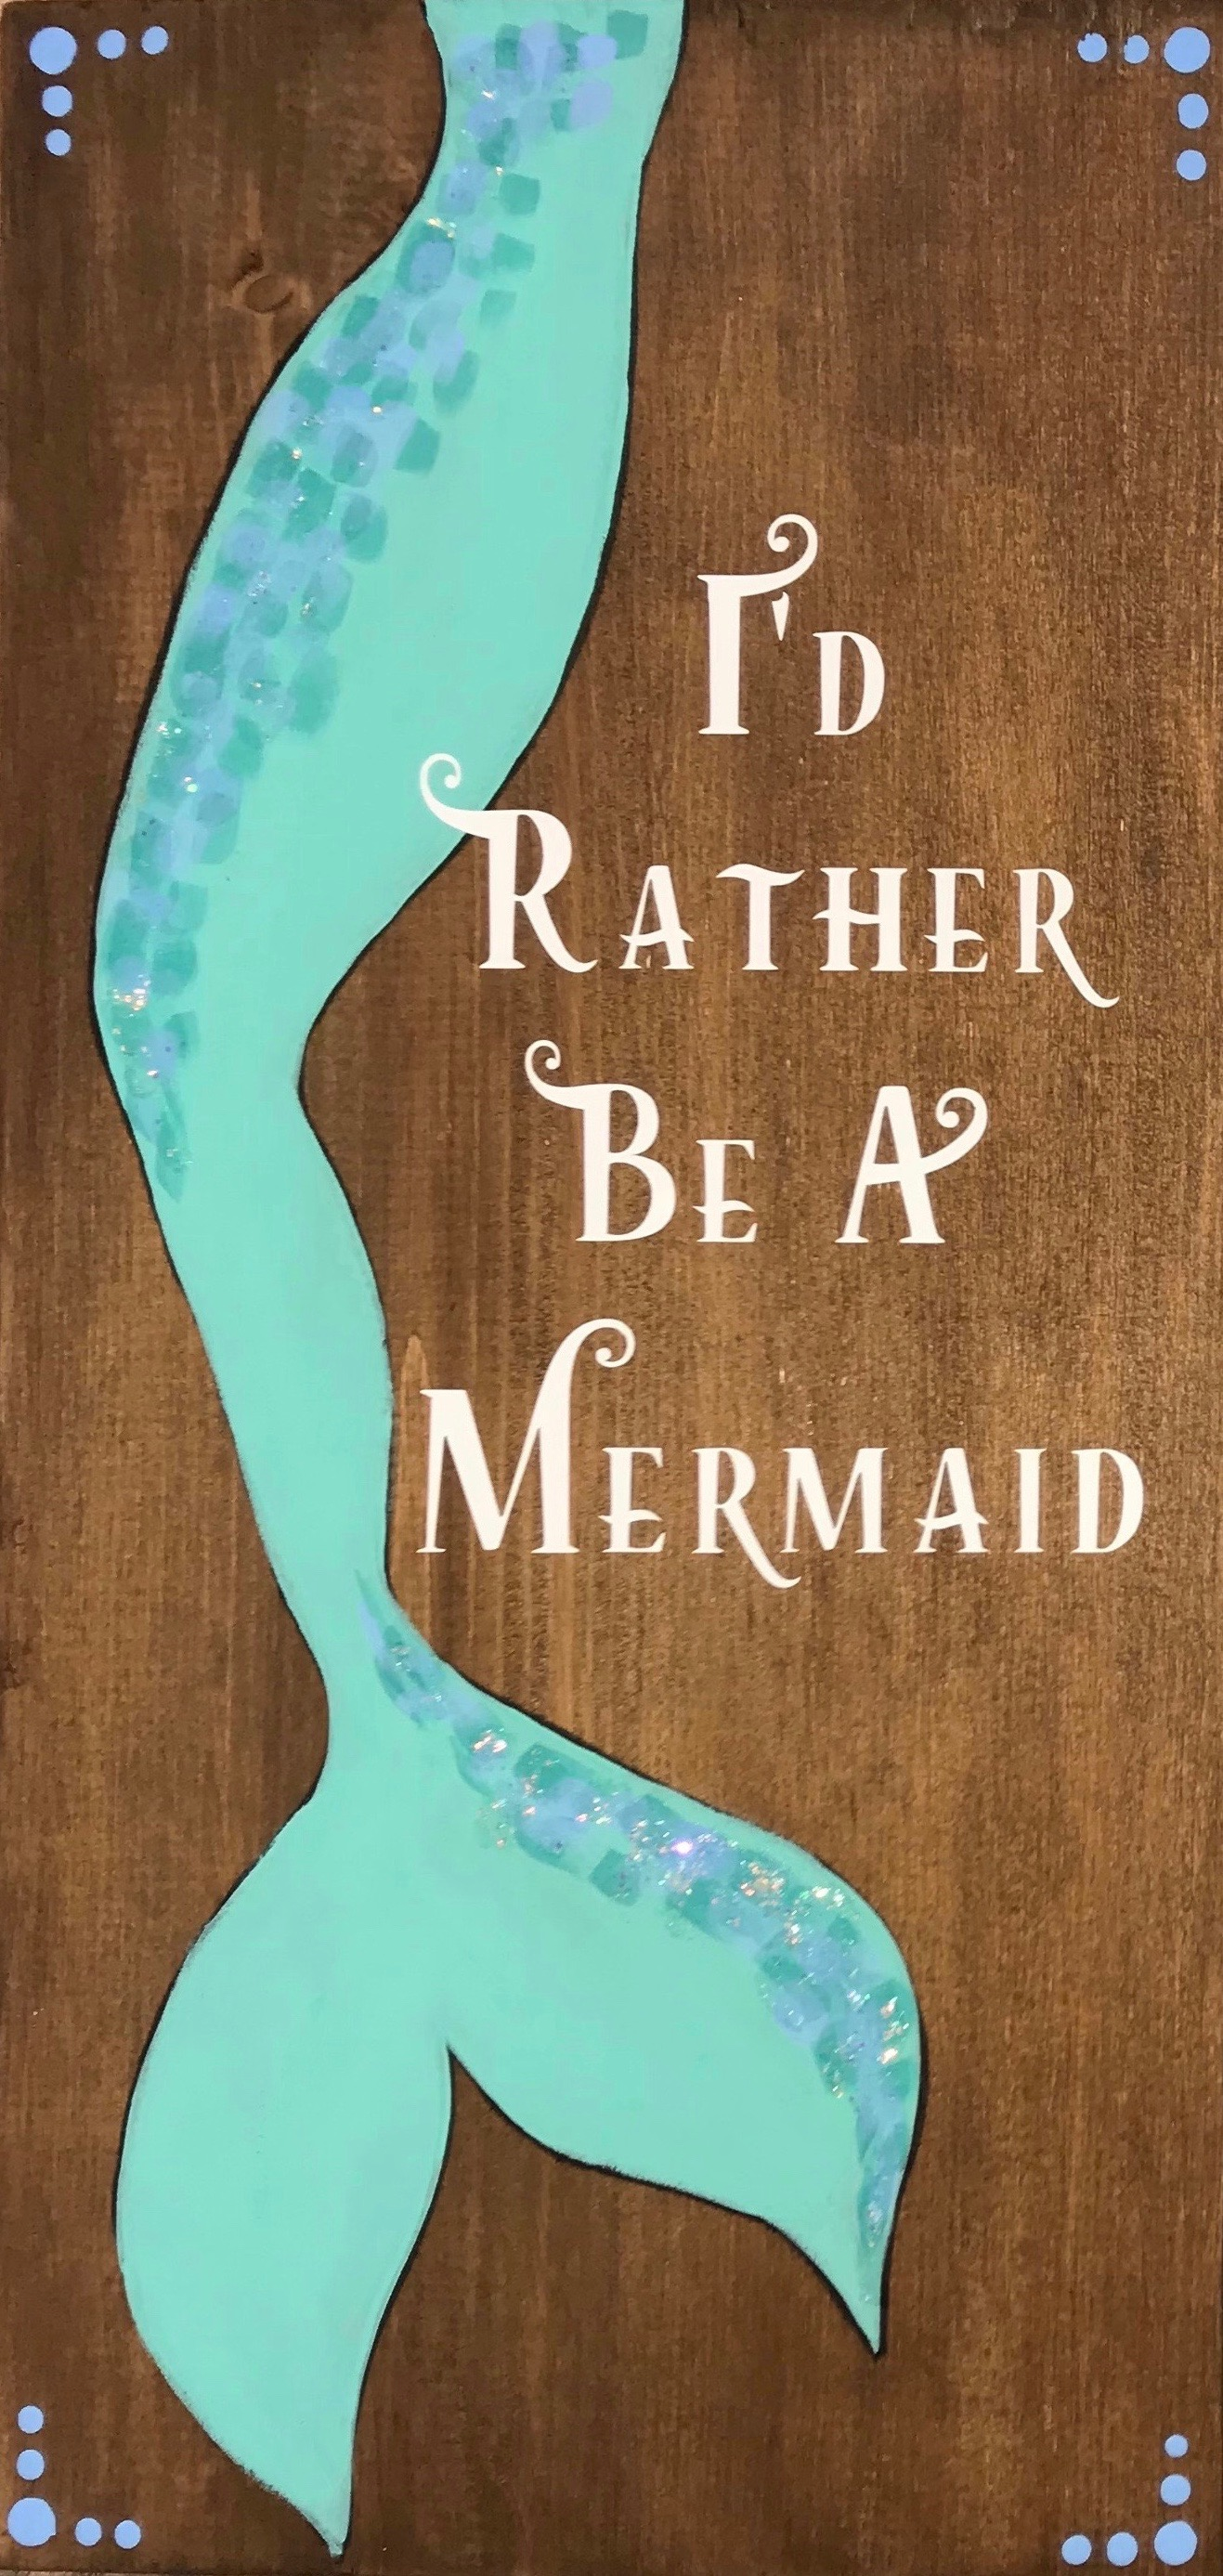 I'd Rather be a Mermaid - 10x19""